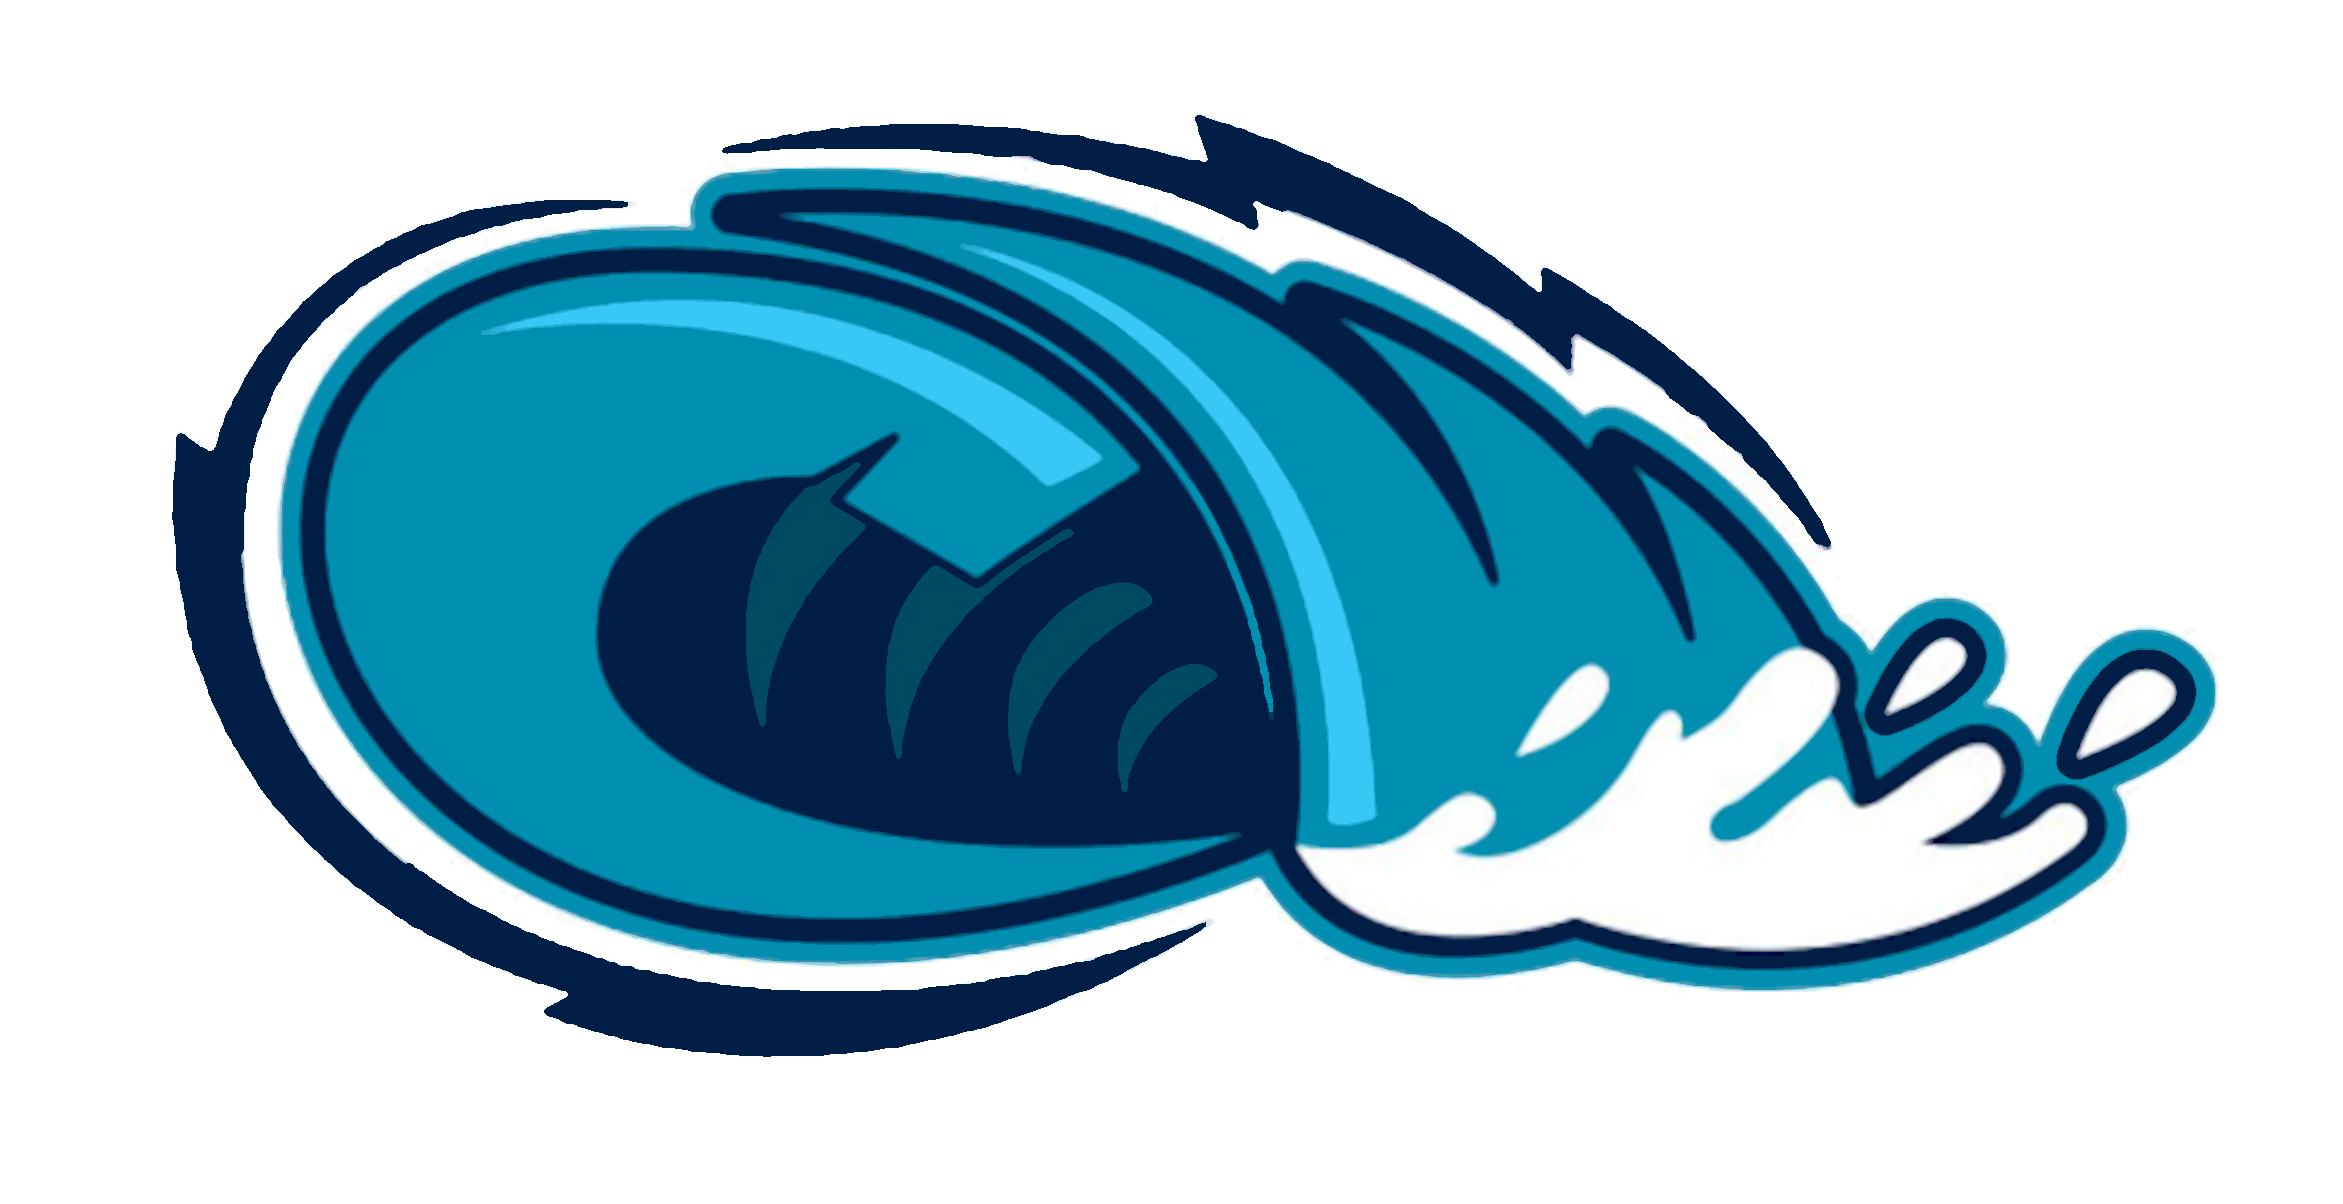 Waves Free Images At Vector Clip Art Online